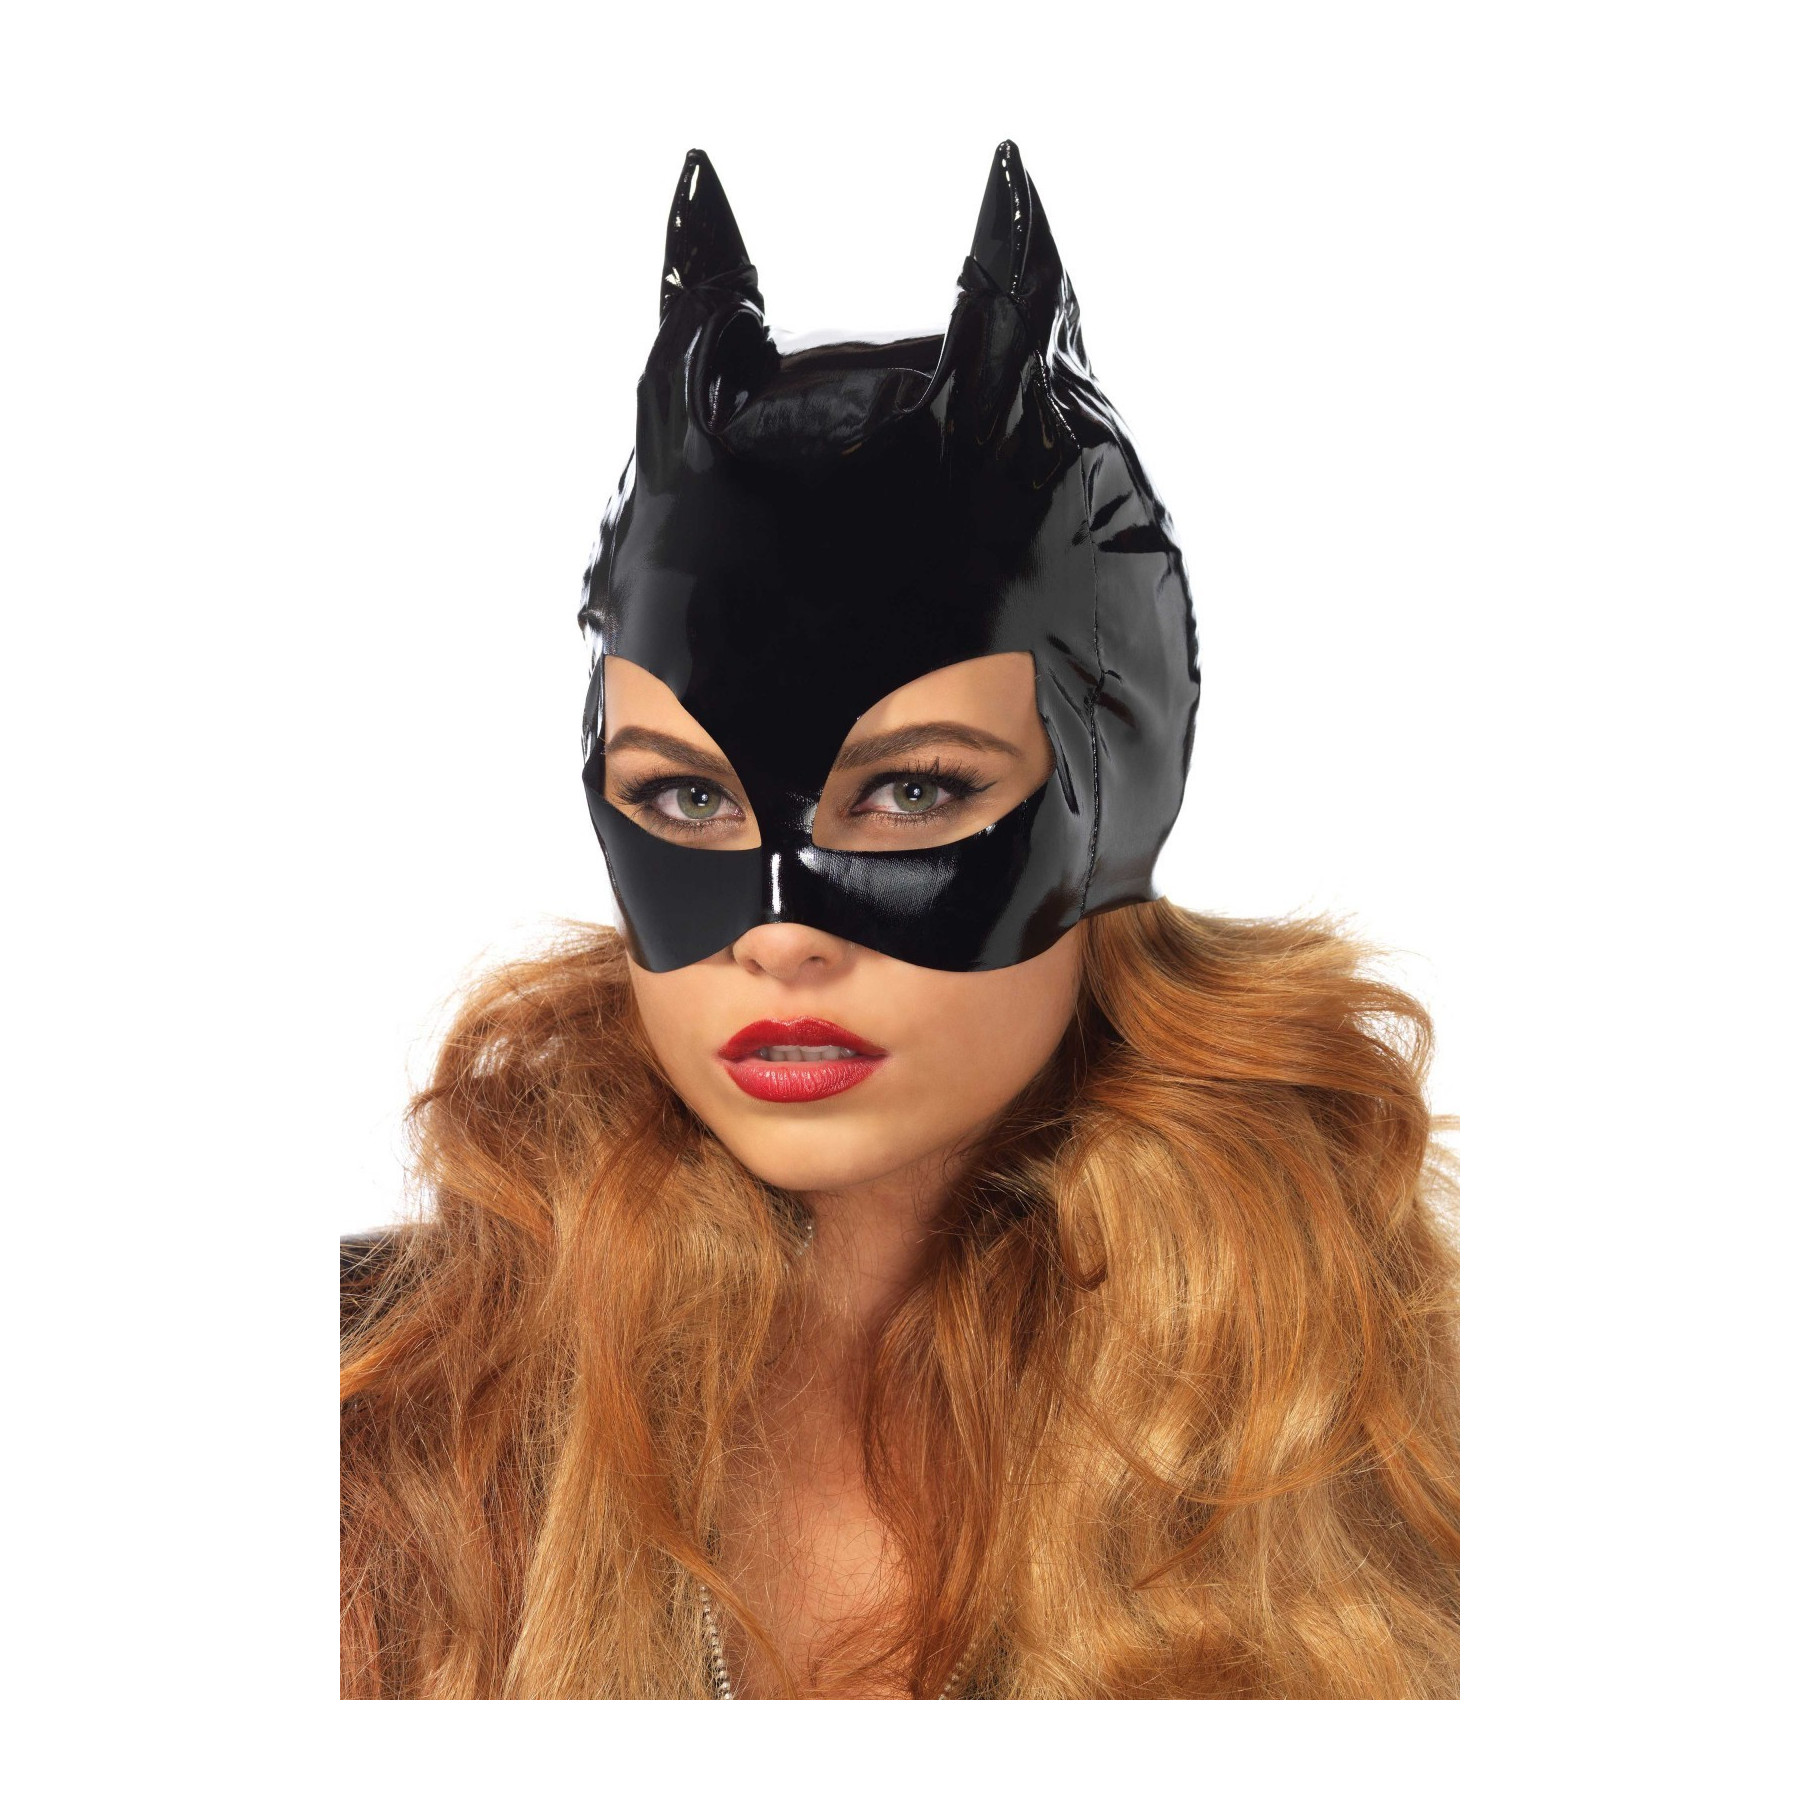 Maschera da Cat Woman in PVC nero lucido Leg Avenue